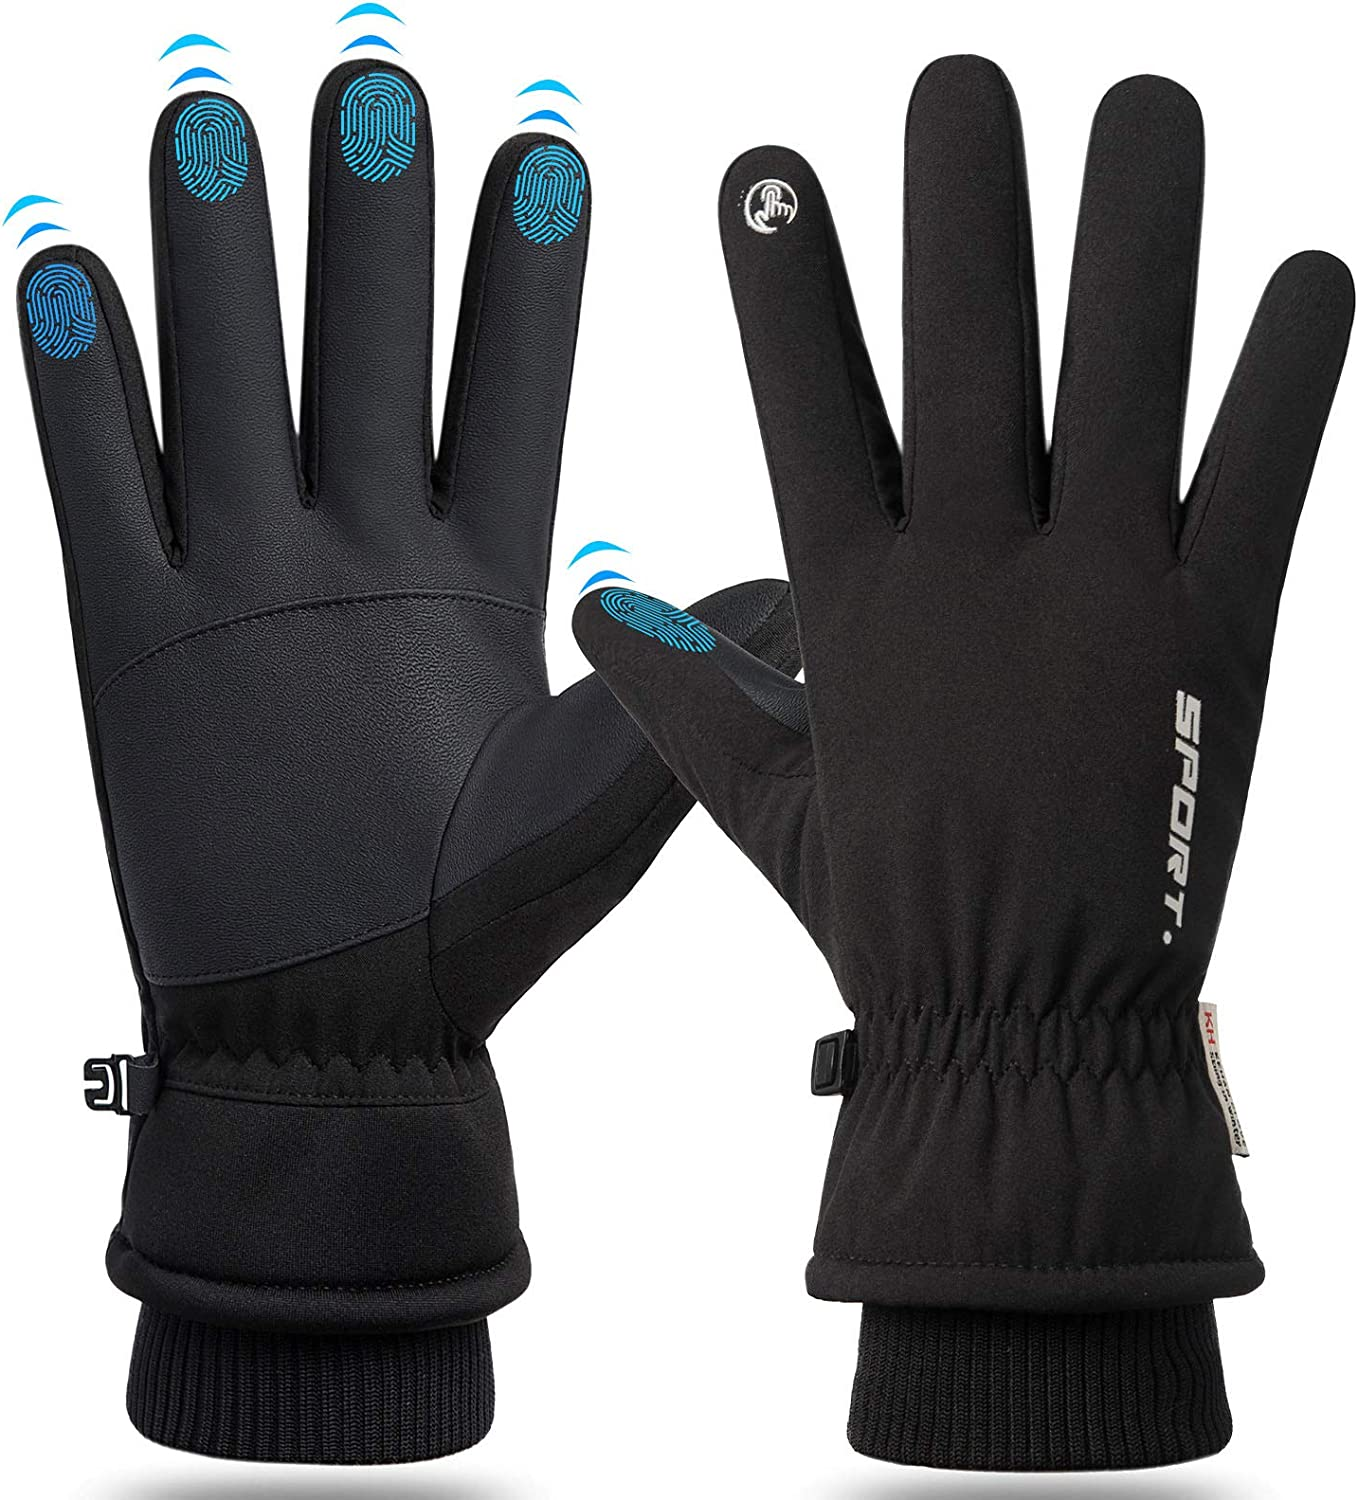 Winter Warm Gloves for Men Women Touchscreen Waterproof Thermal Snow Gloves for Cycling Hiking Running Skiing Outdoor Working